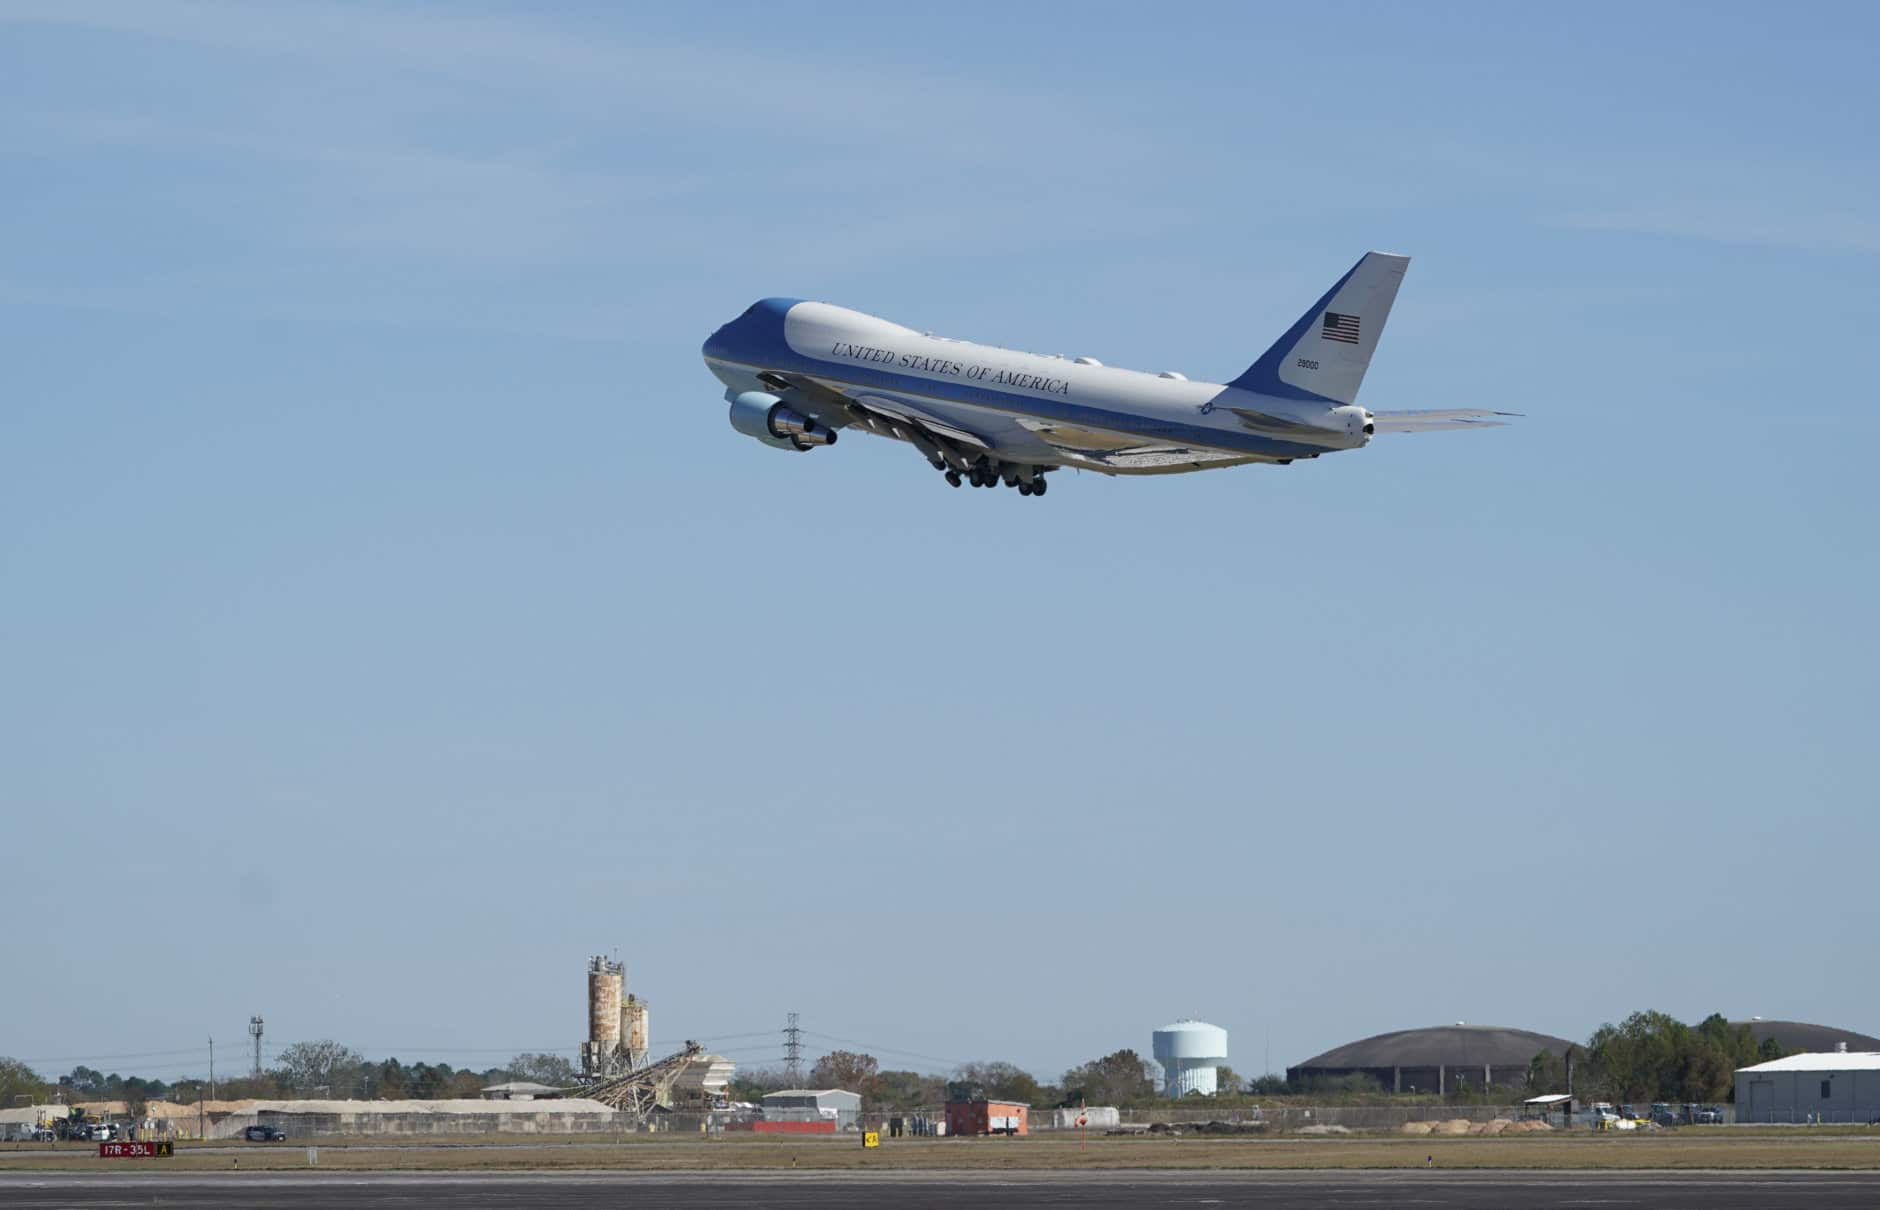 The plane carrying former President George H.W. Bush takes off from Ellington Filed Monday, Dec. 3, 2018, in Houston, as it heads to Washington. (AP Photo/David J. Phillip, Pool)